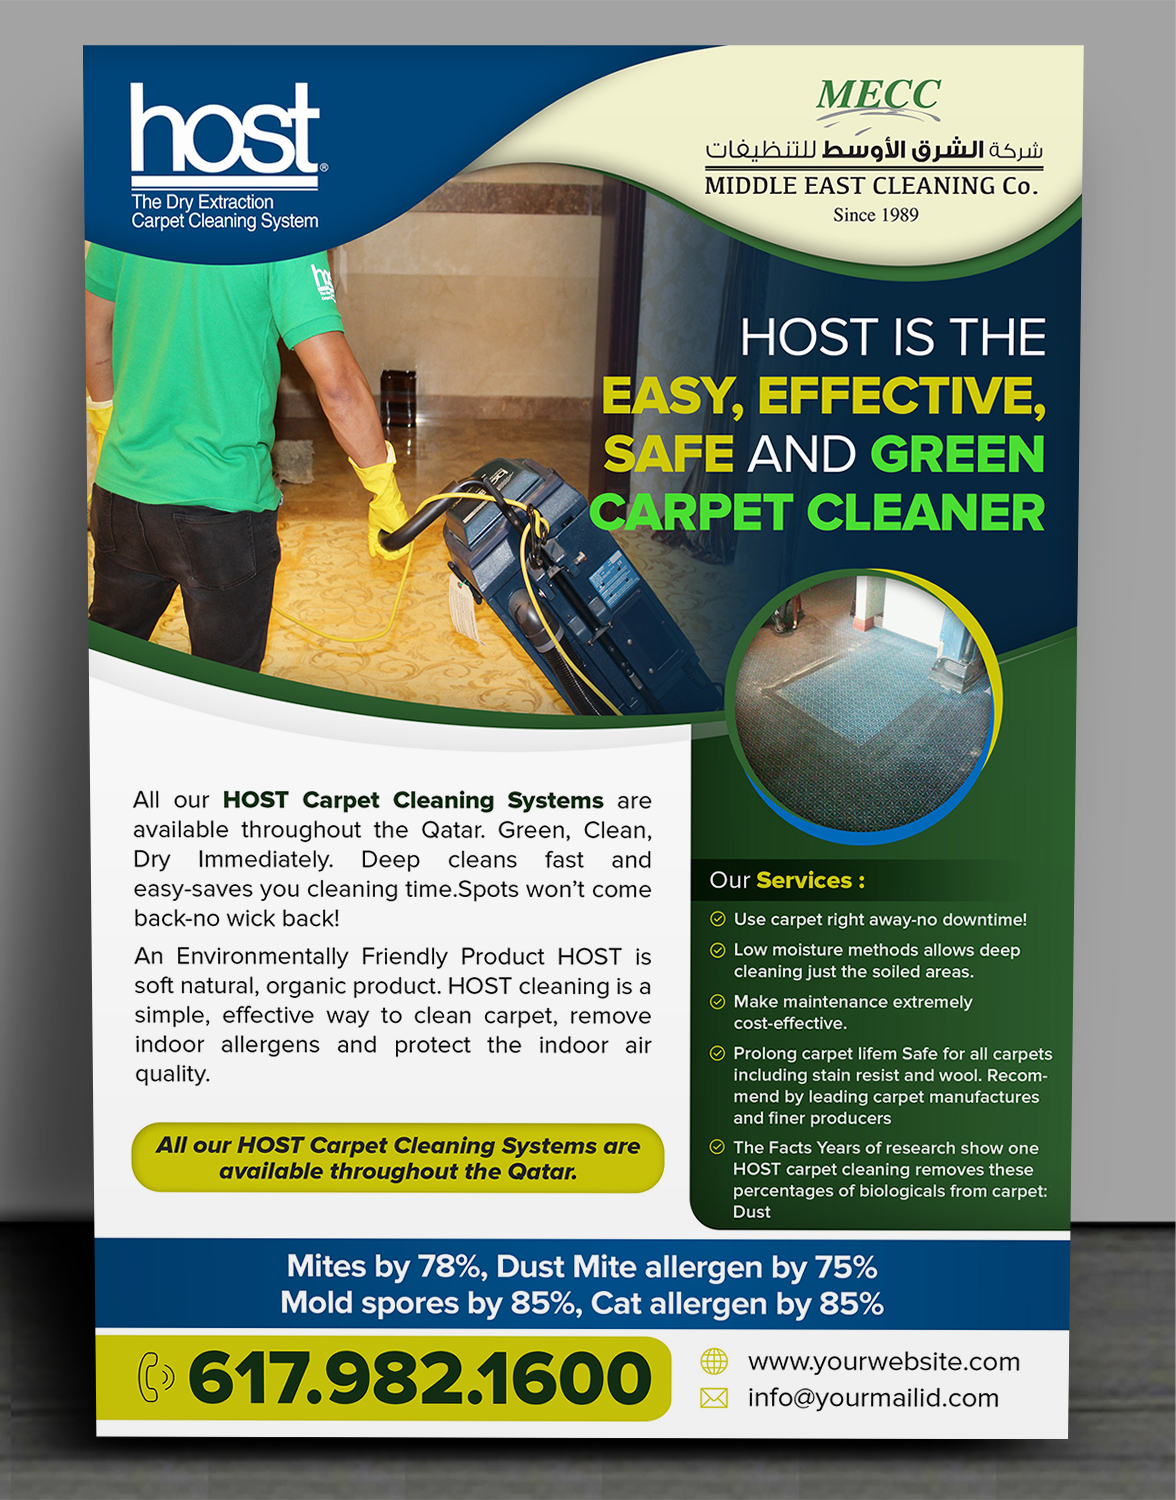 elegant playful house cleaning flyer design for a company in qatar design 19969770